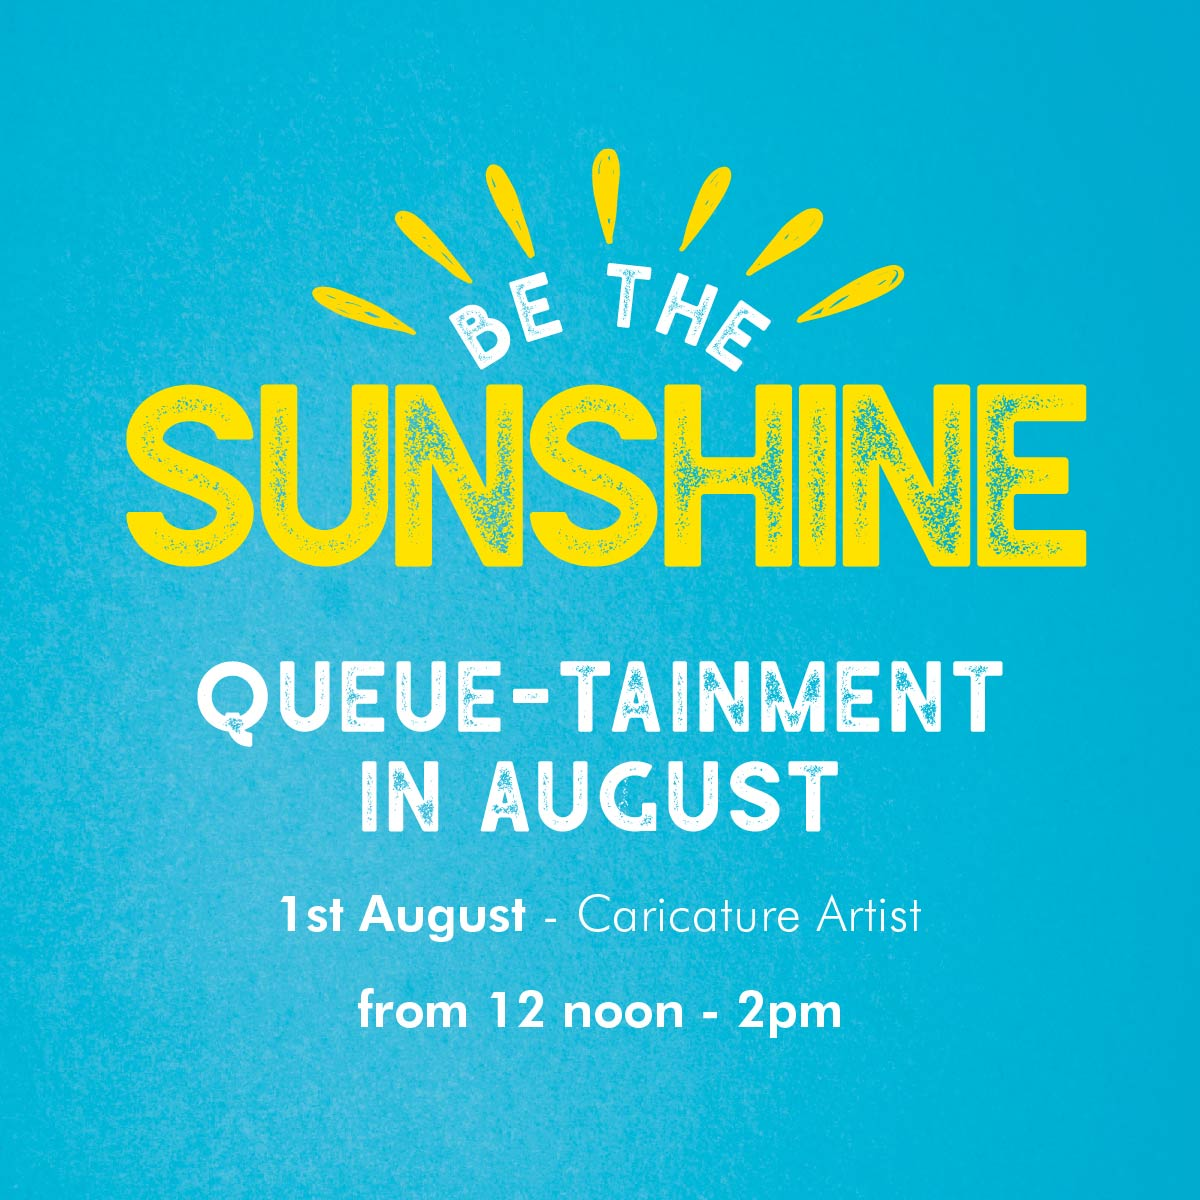 Queuetainment at Bridgewater Shopping Centre – Weekend 1 Round-Up Post!